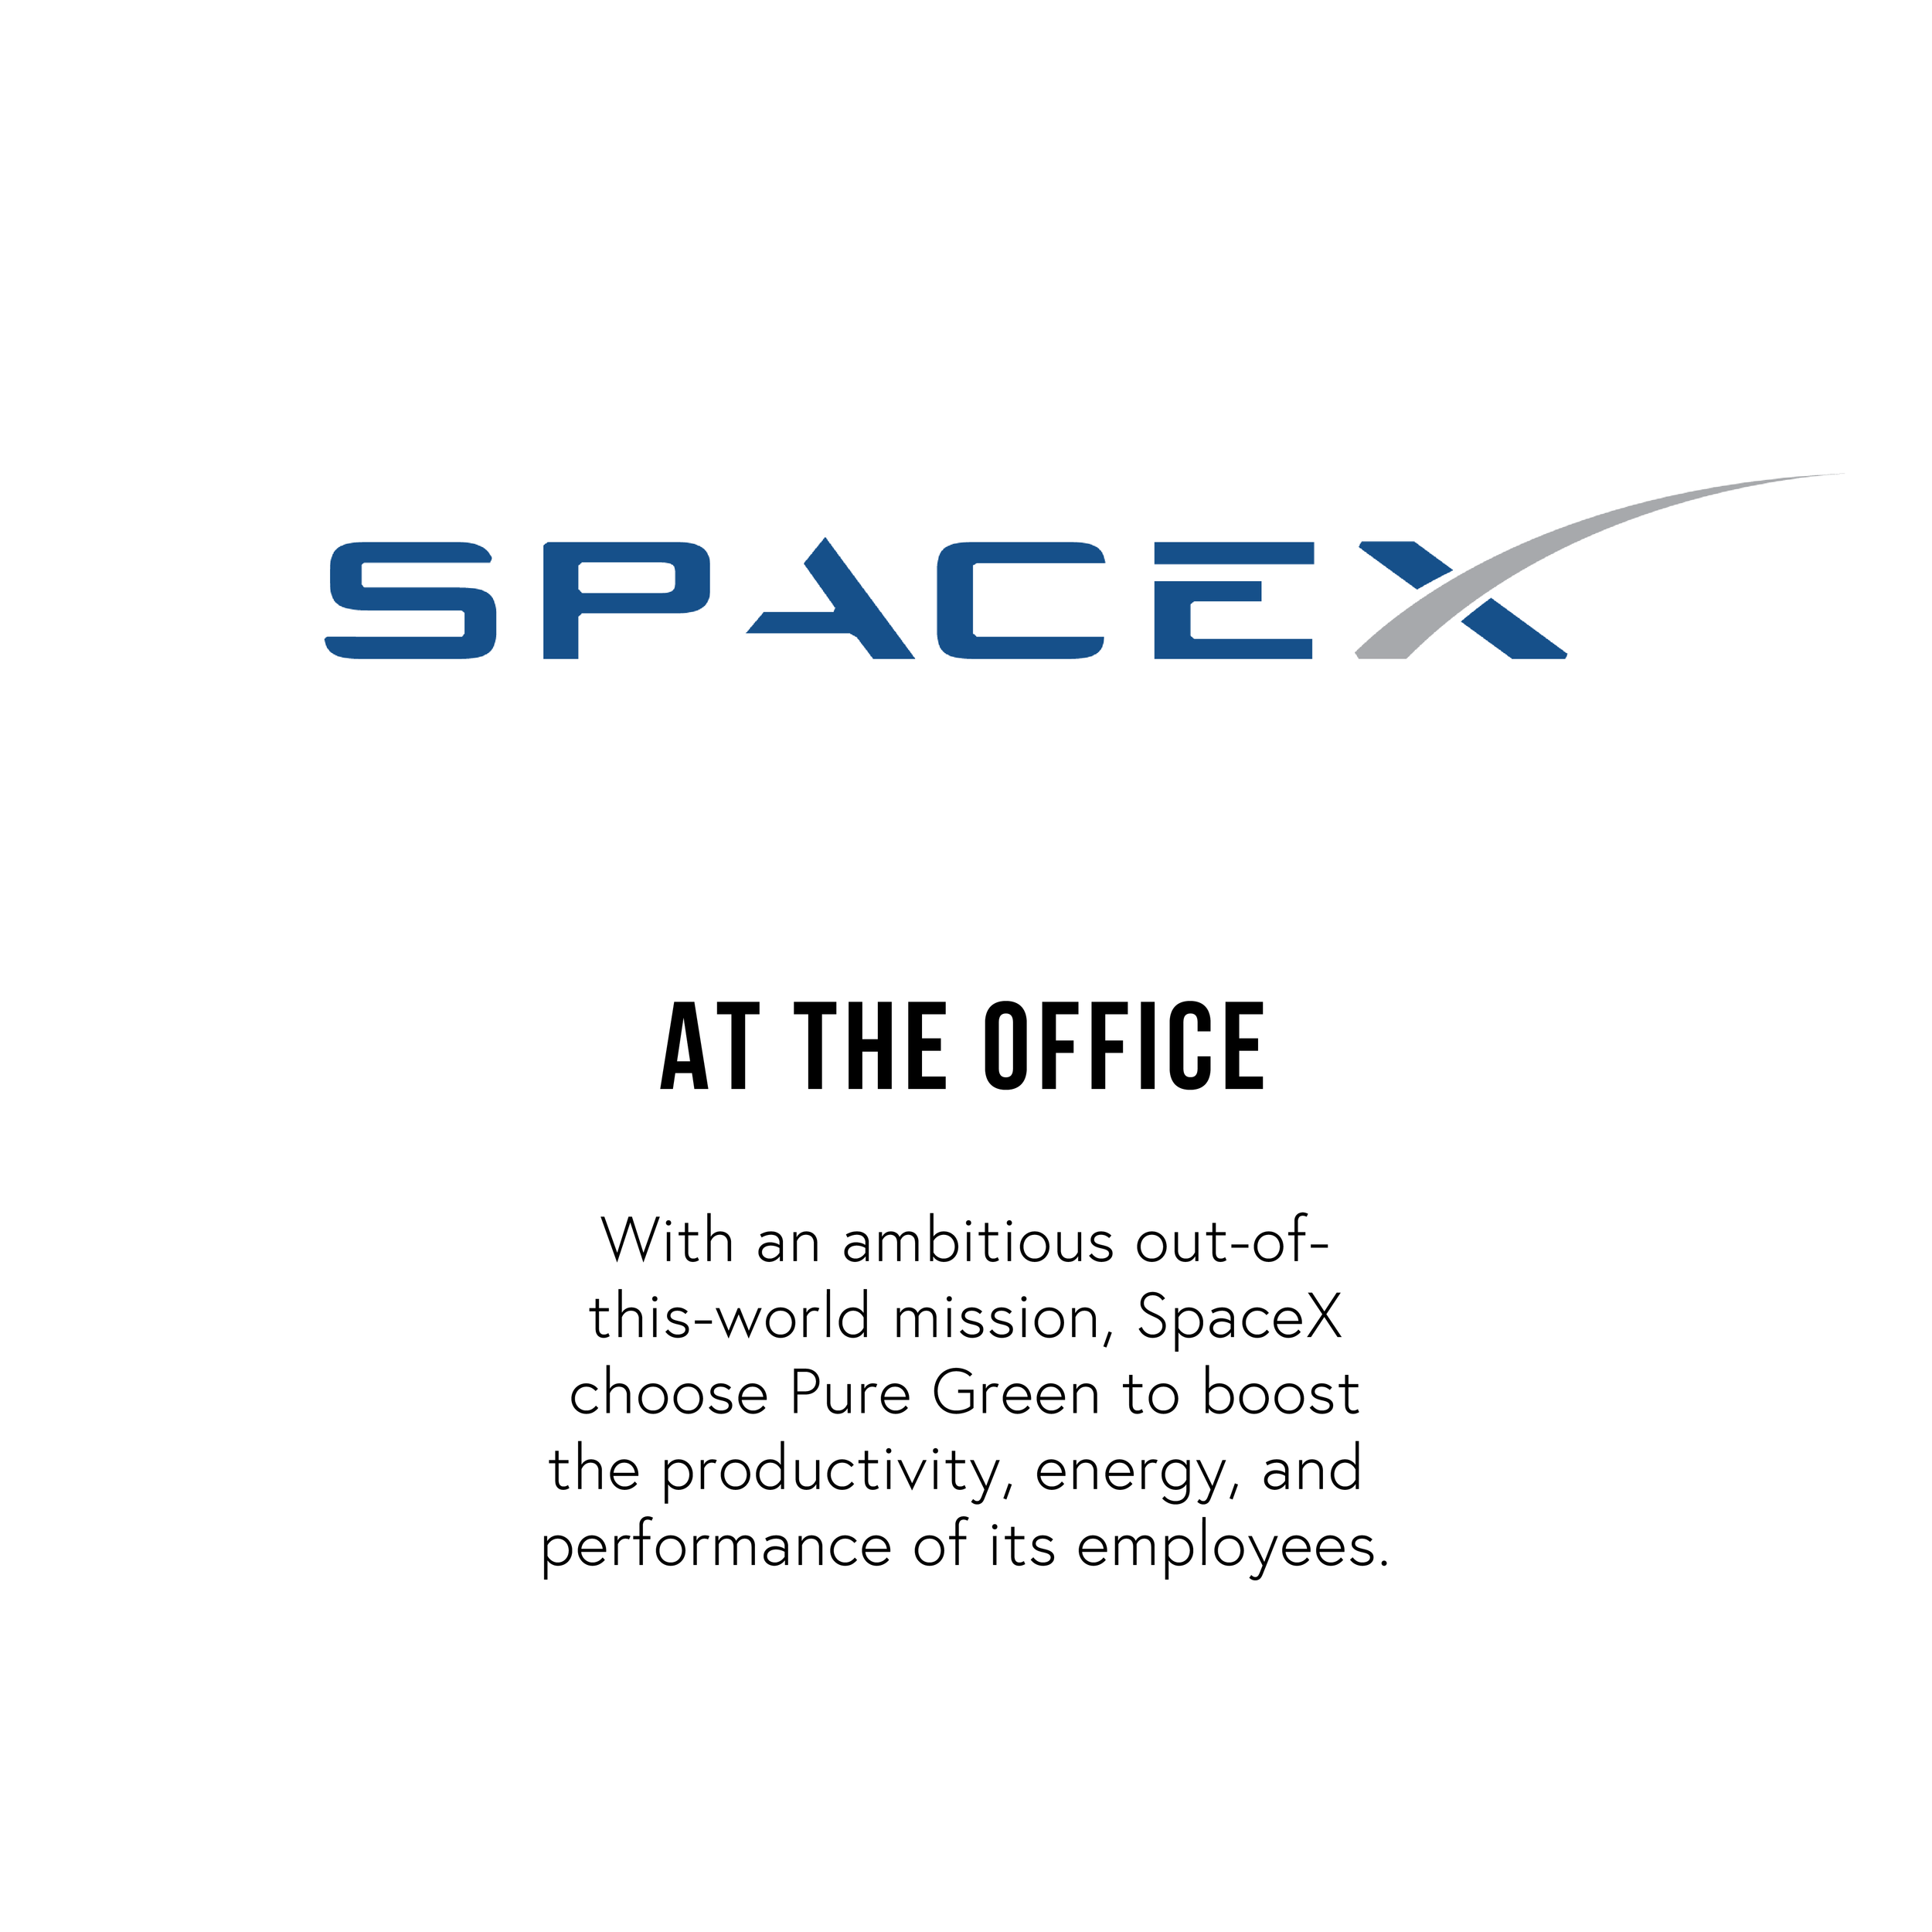 SpaceX-06.png